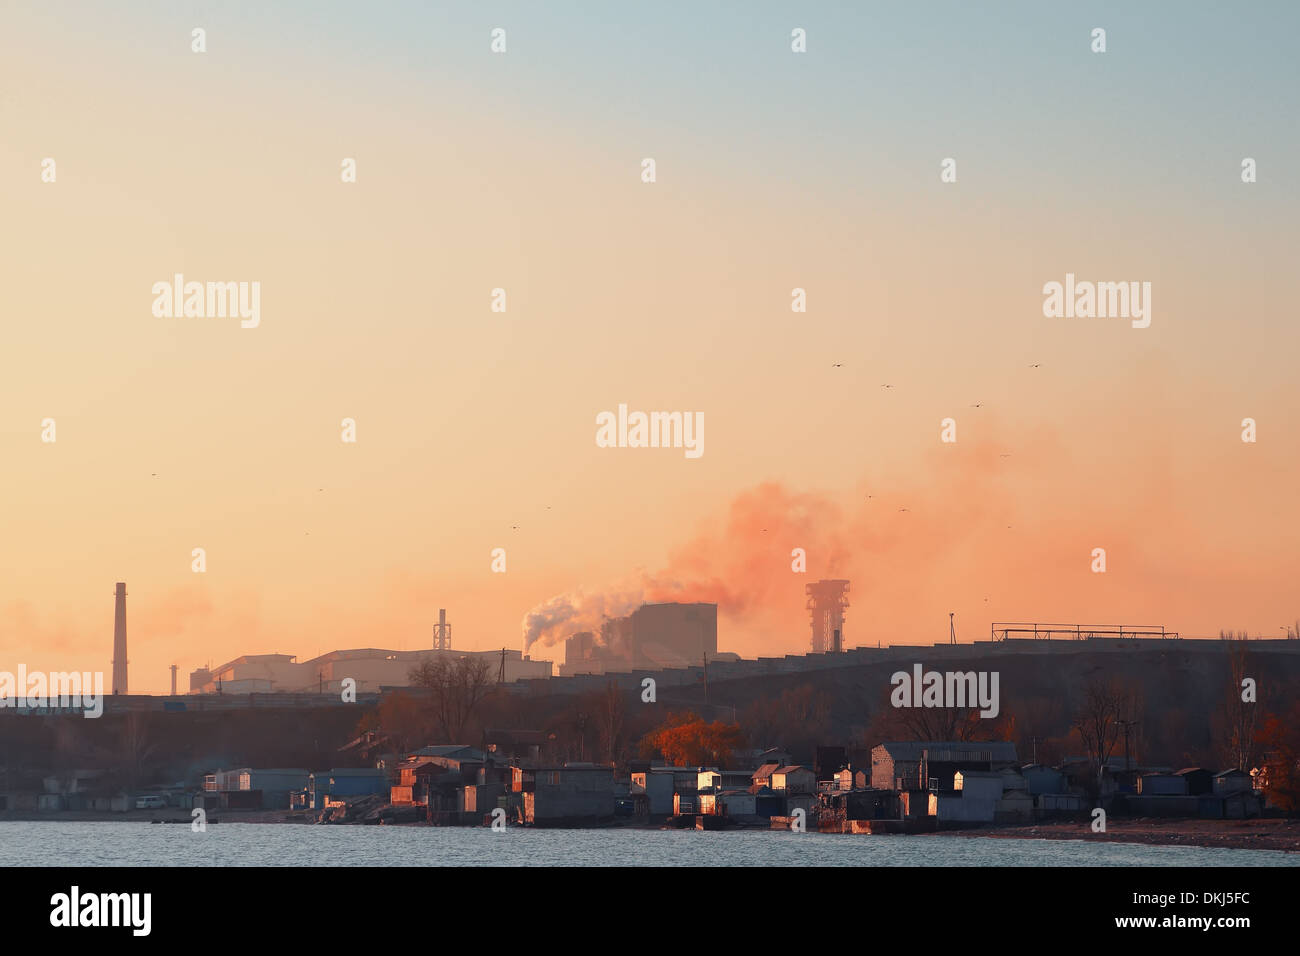 heavy industry,environmental pollution - Stock Image